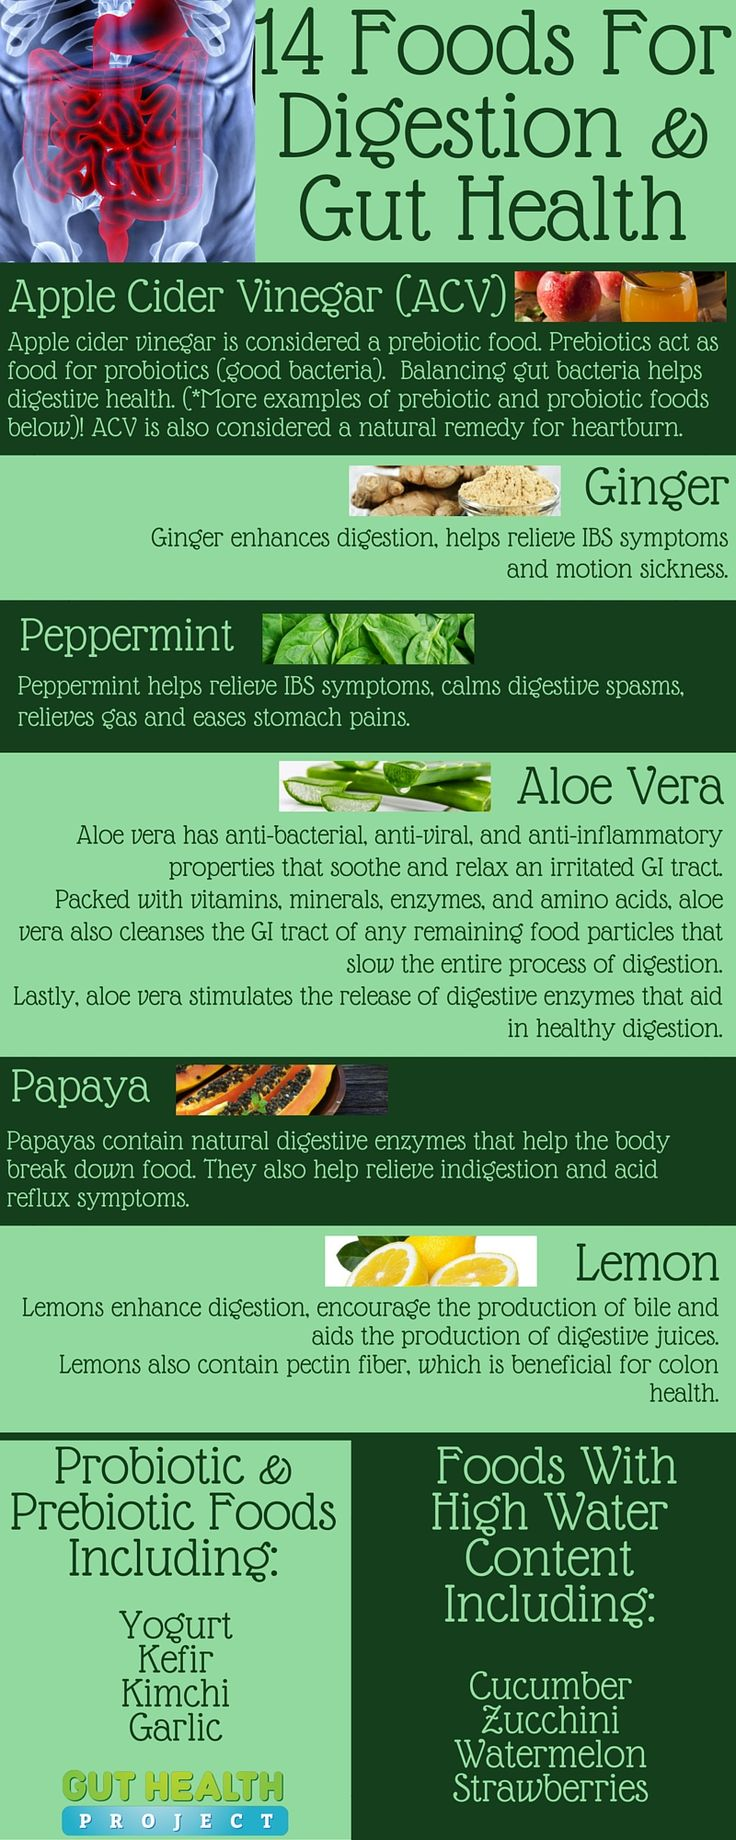 14 Foods For Digestion | Natural Remedies | Holistic | Healthy Eating |